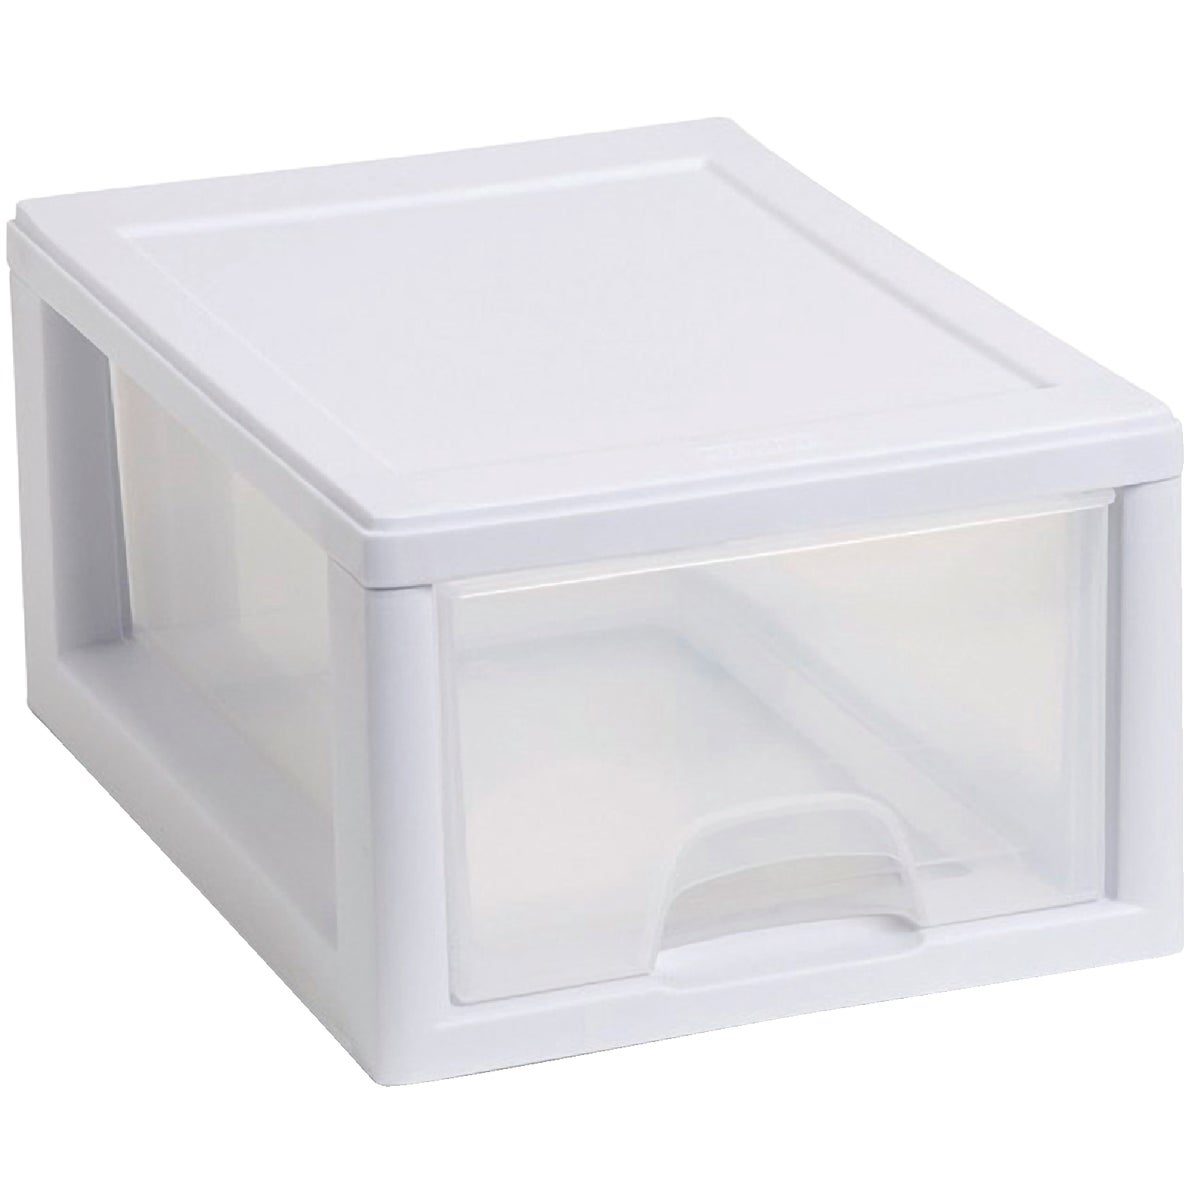 7QT STORAGE DRAWER - 20518006 by Sterilite Corp